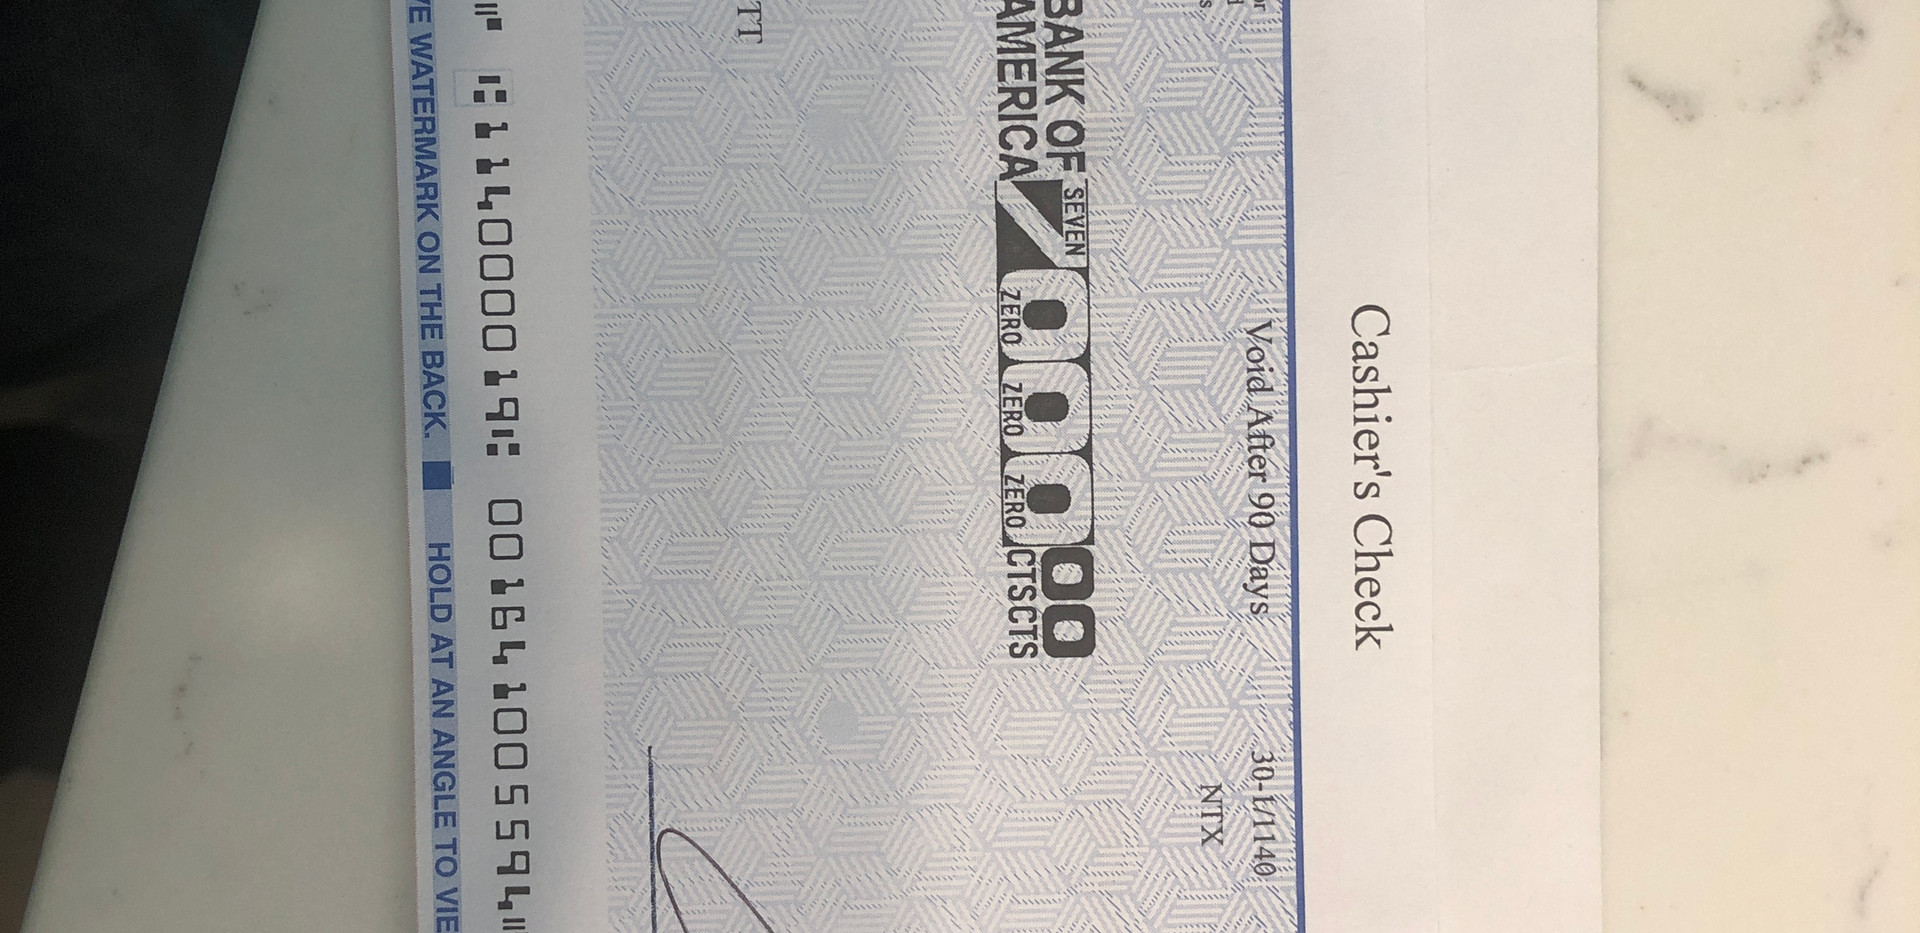 Check from Andrea Scott to FBI CHS Derek